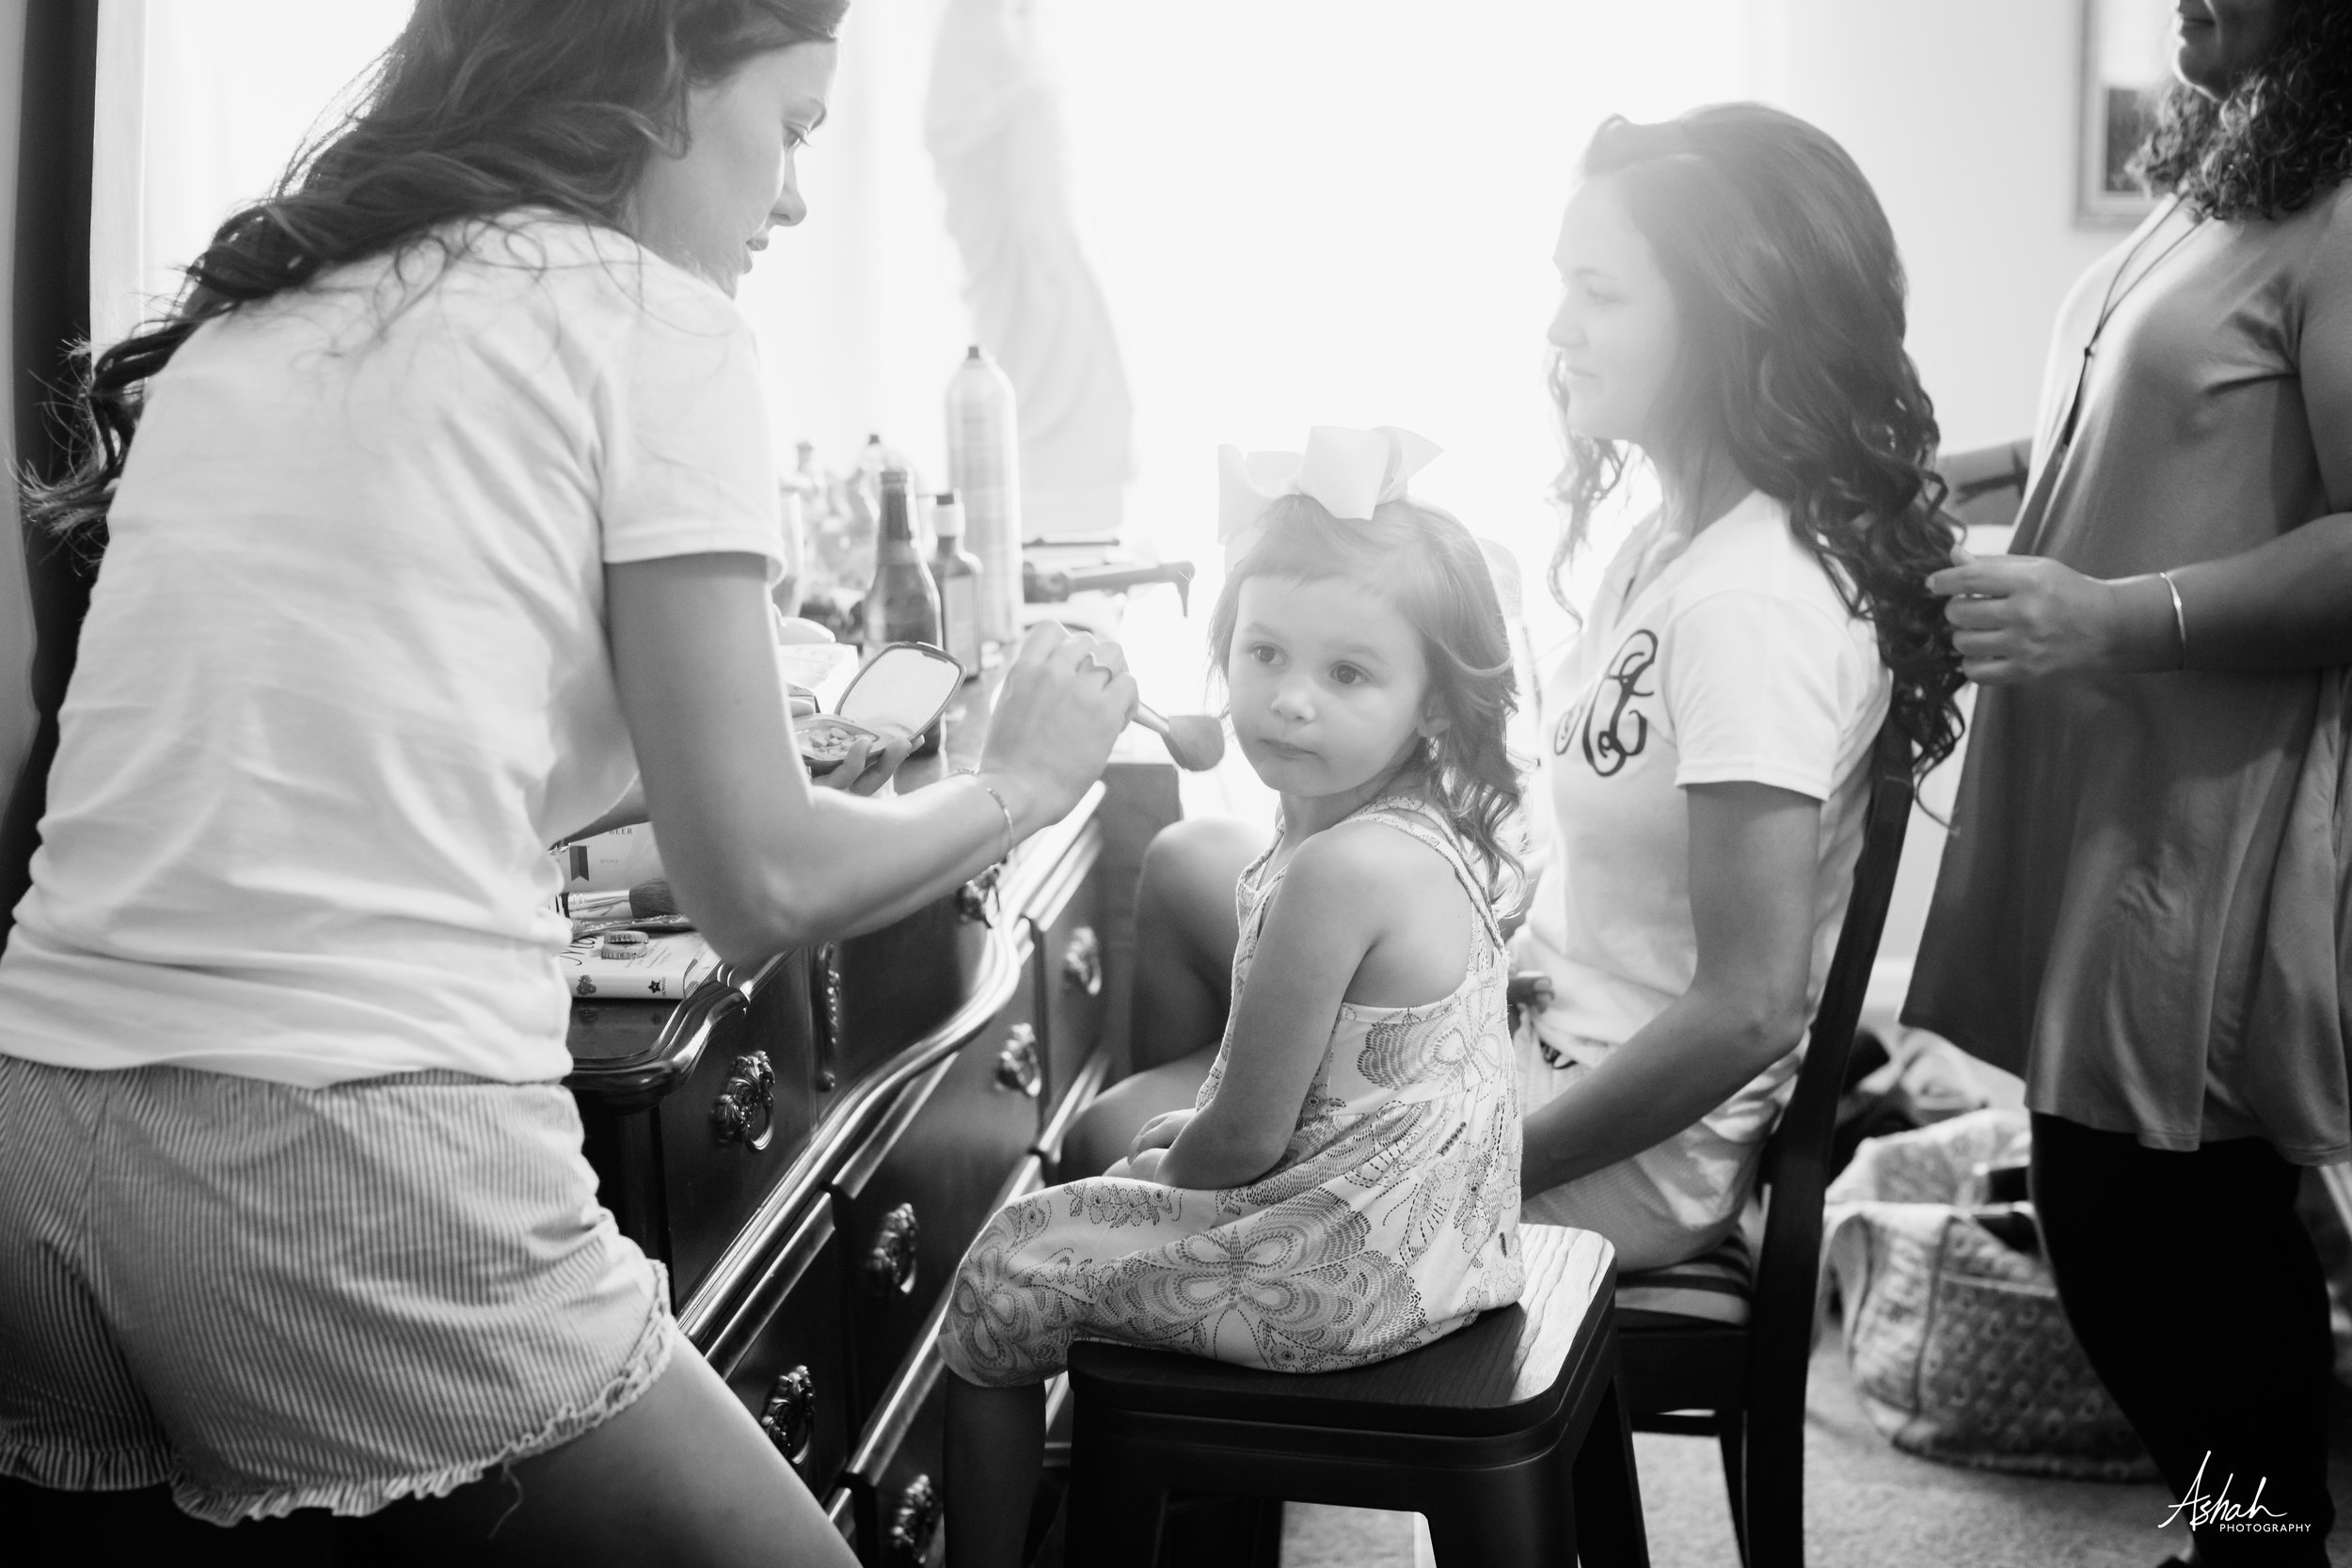 Precious flower girl getting pampered next to the bride | Photo:  Ashah Photography